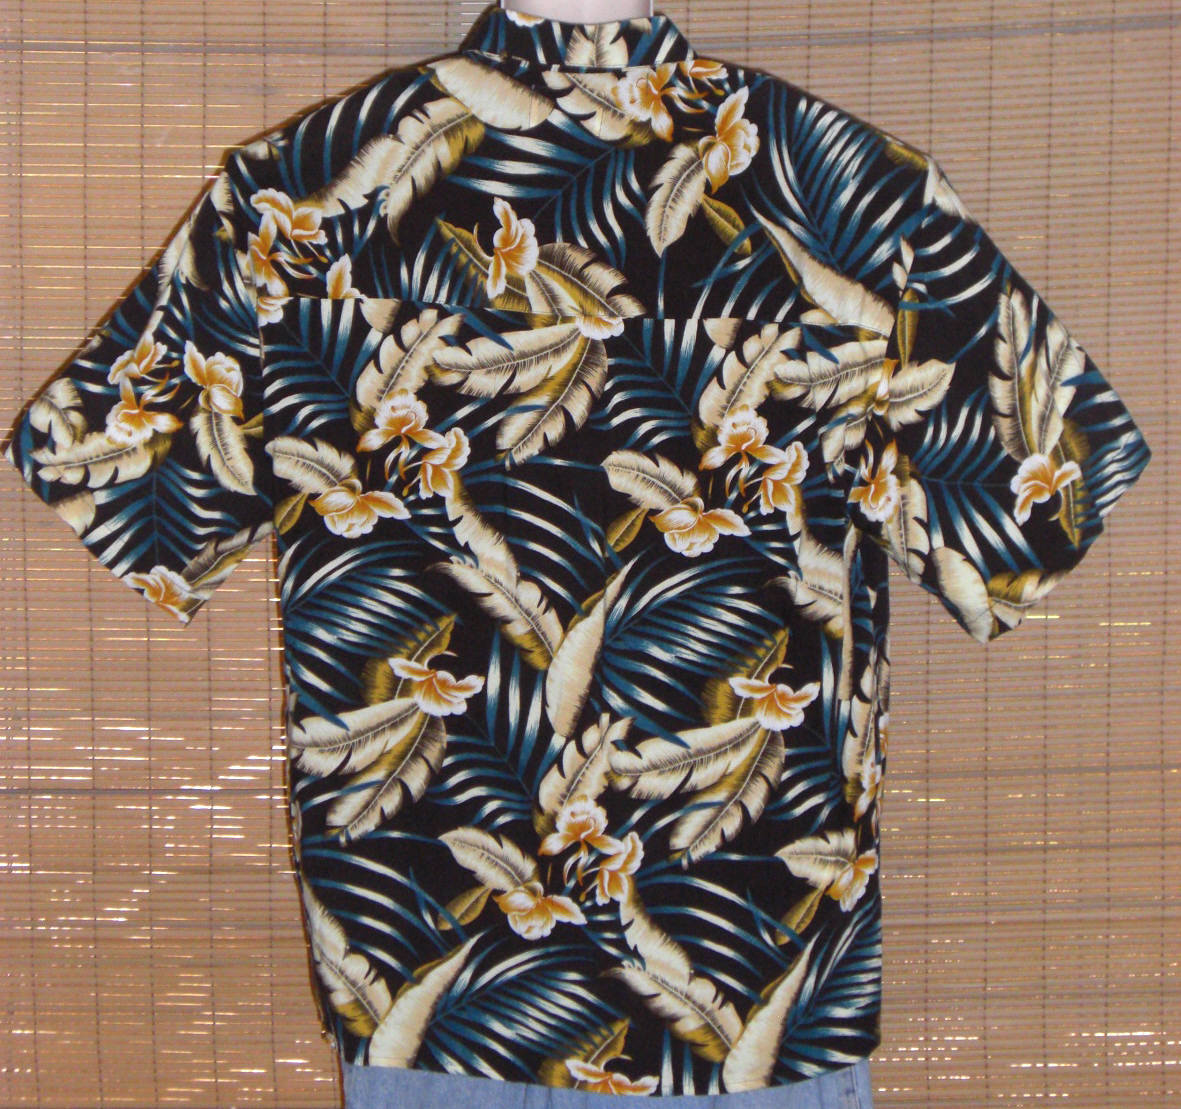 Ringo Sport Hawaiian Shirt 1970s Black Blue Tan Large